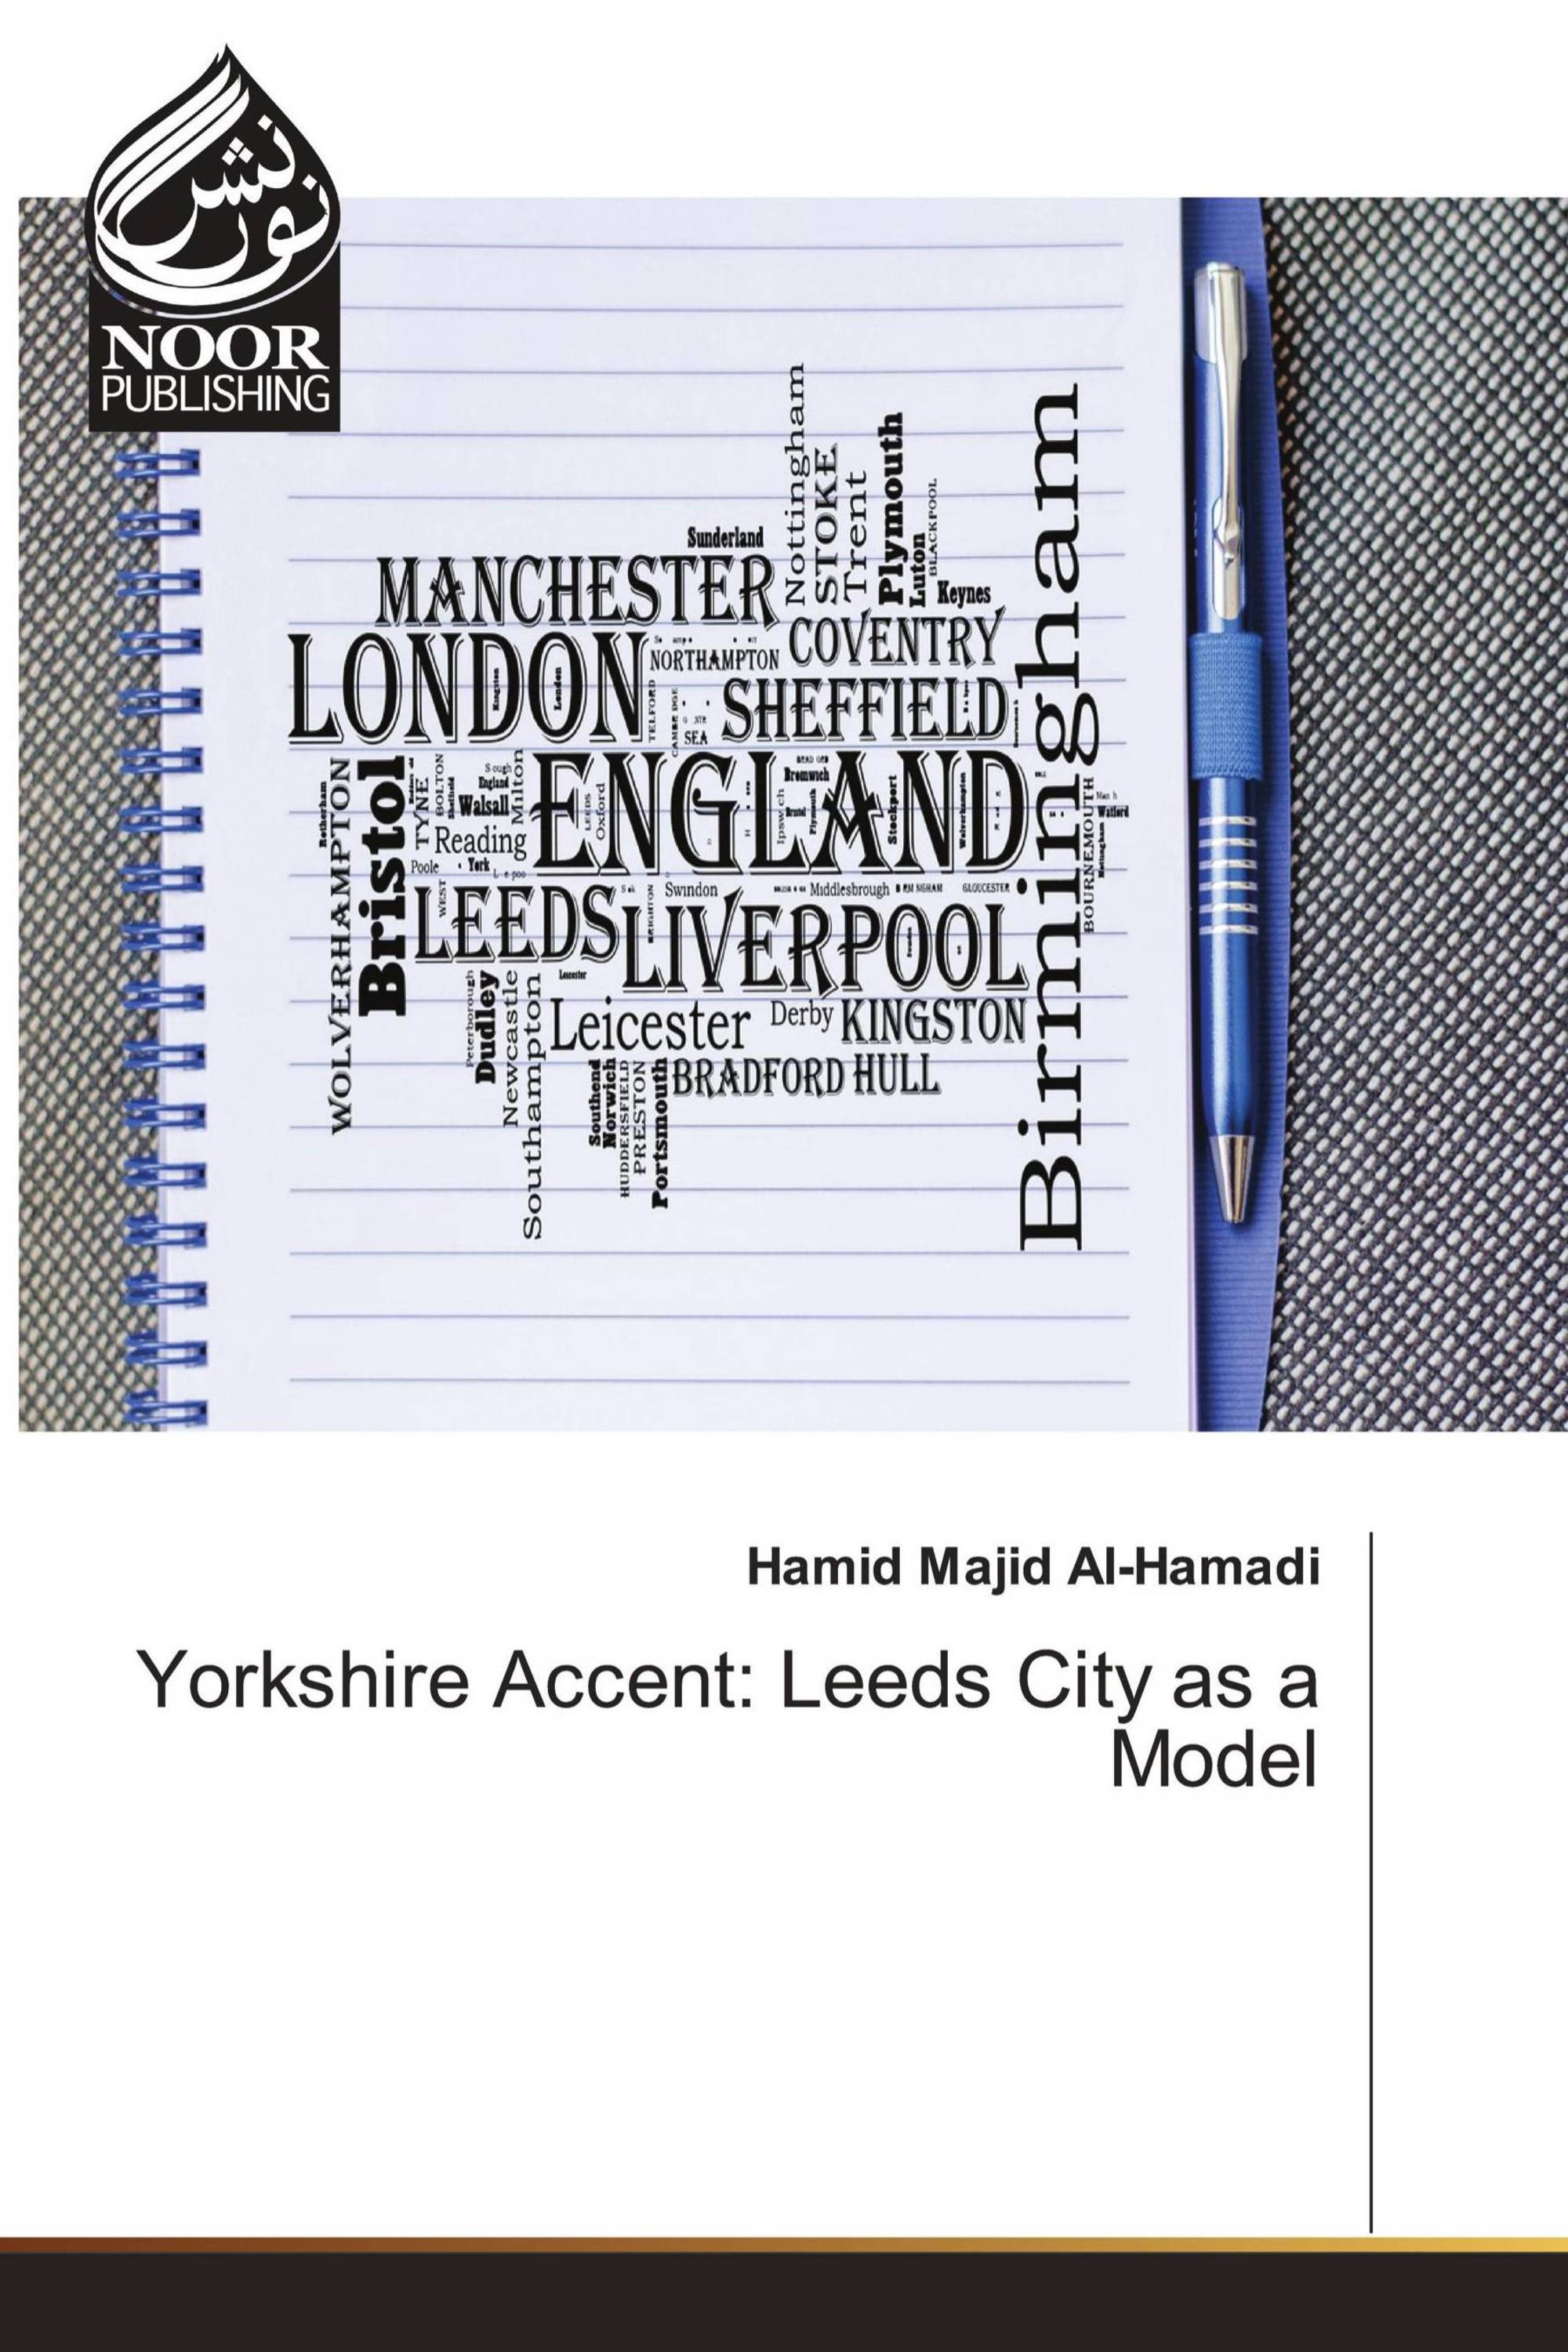 Yorkshire Accent: Leeds City as a Model